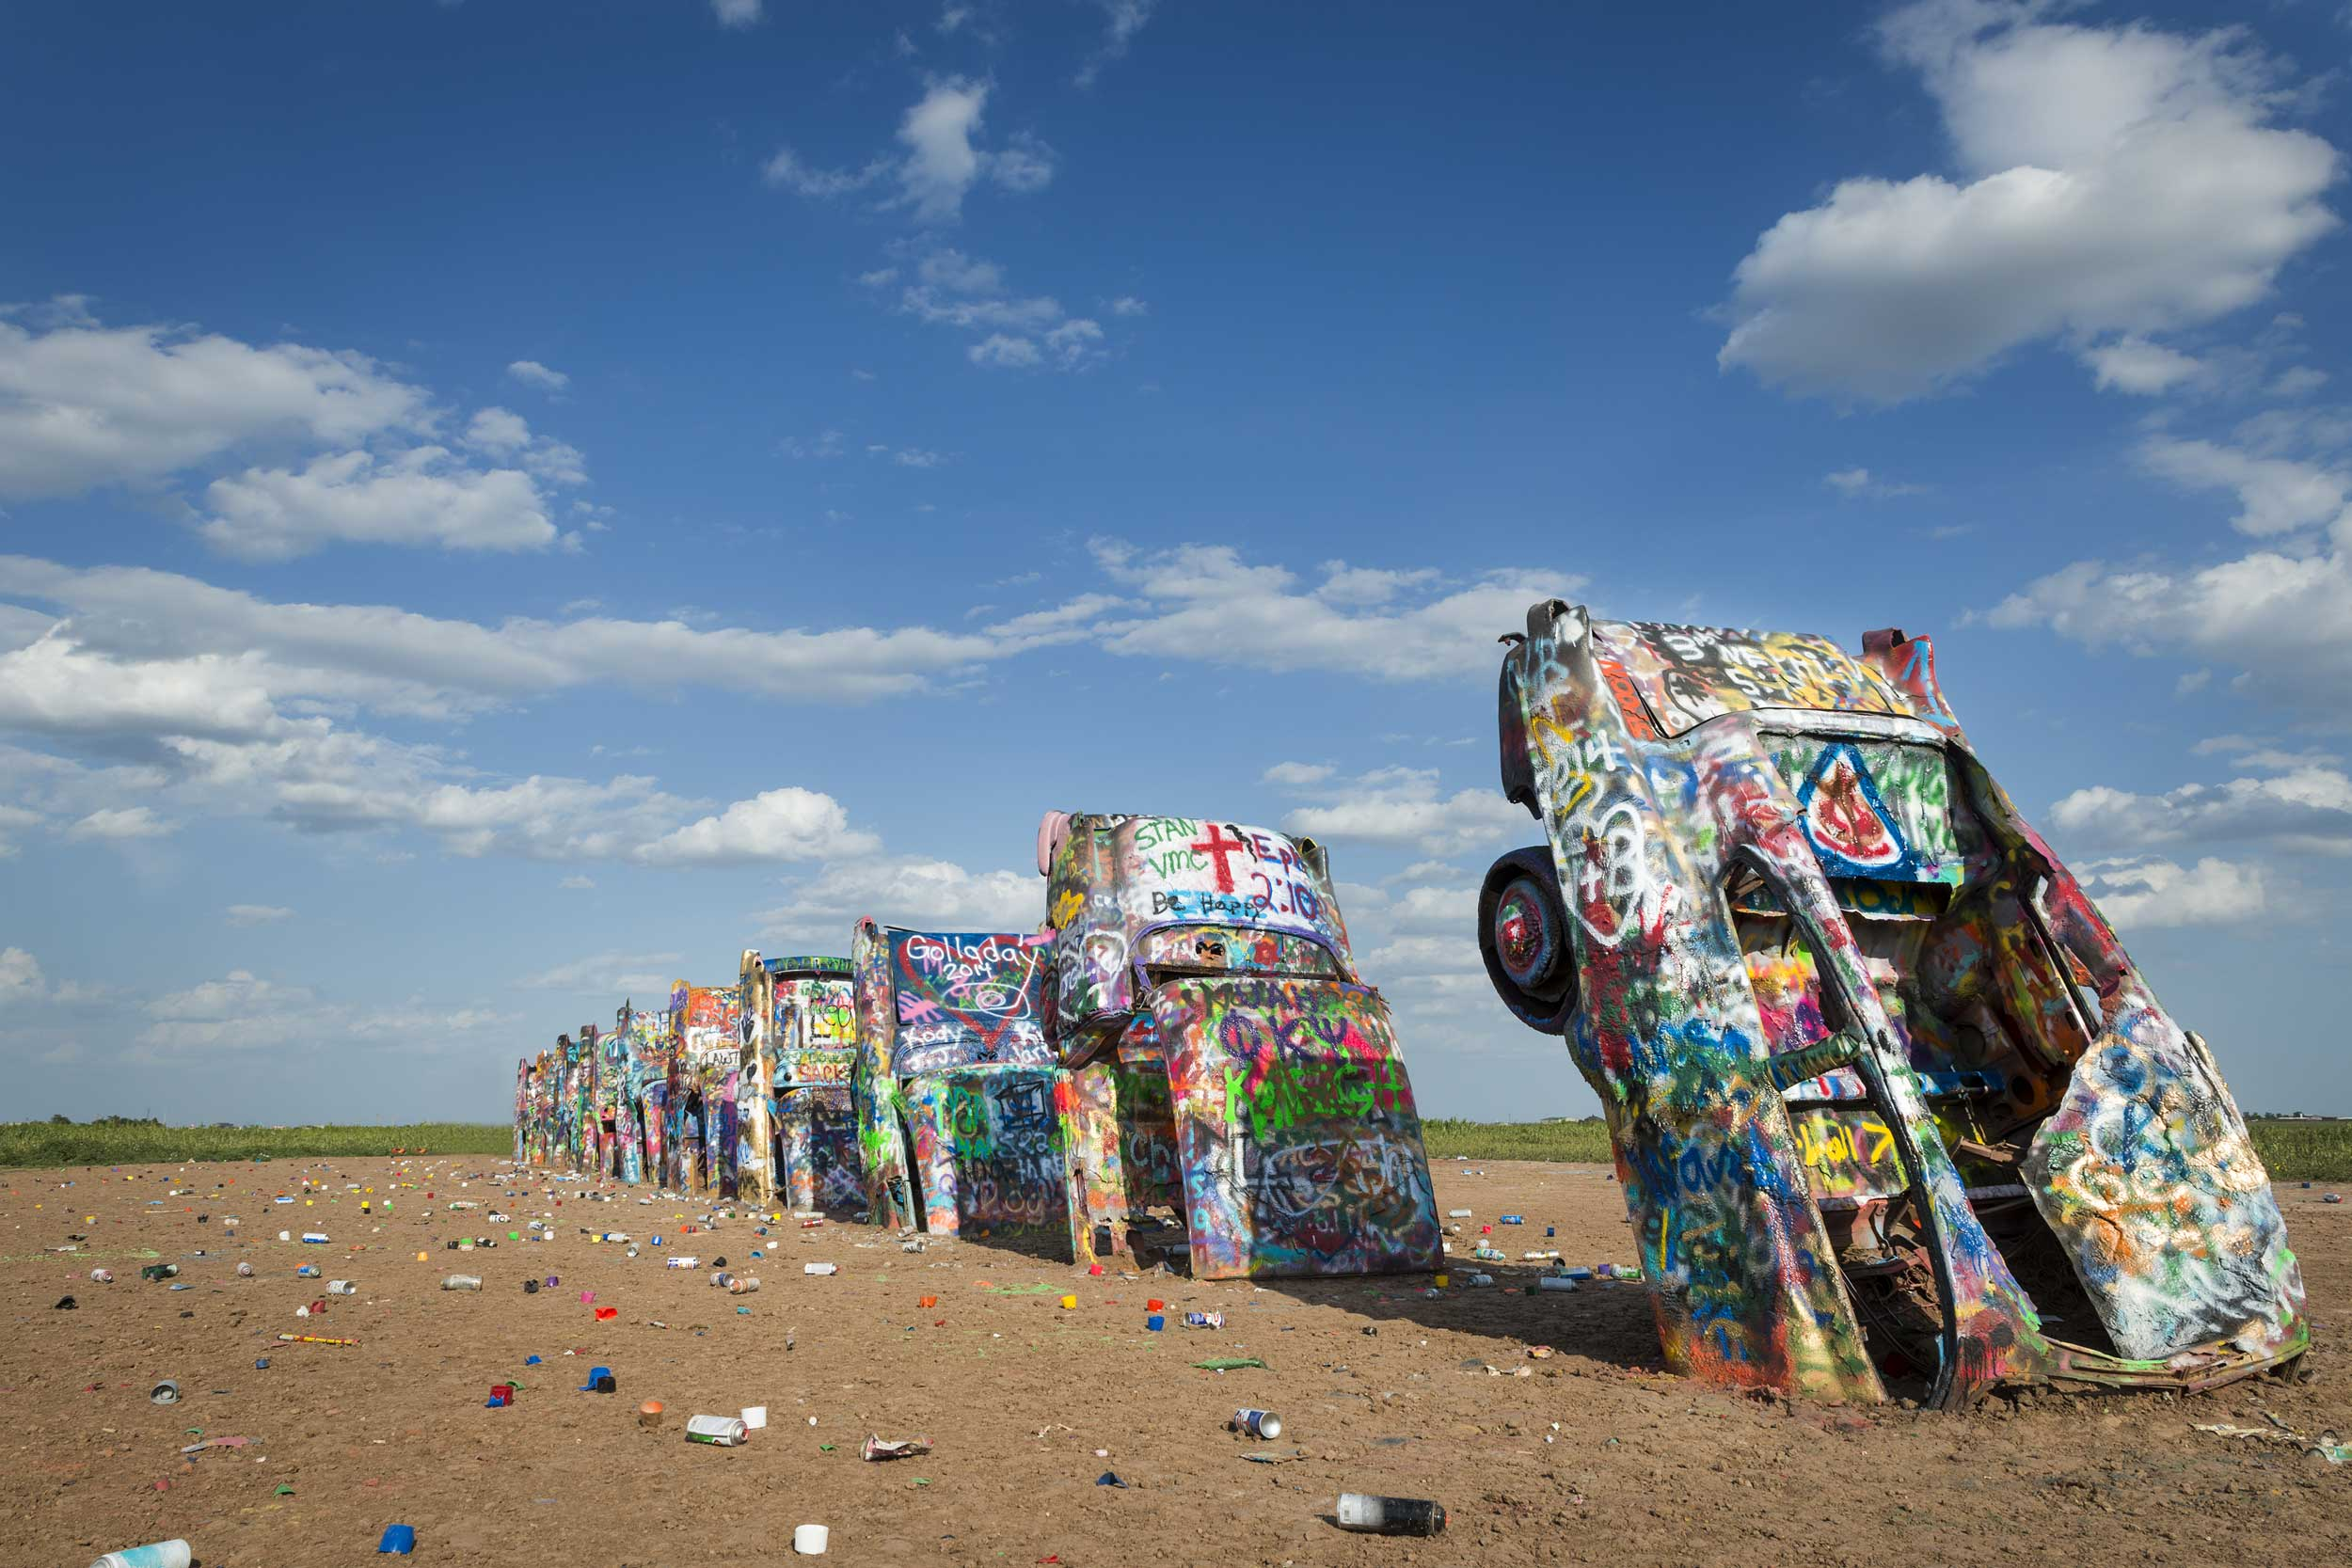 Row of brightly painted Cadillacs buried nose down in the sand, Texas, USA